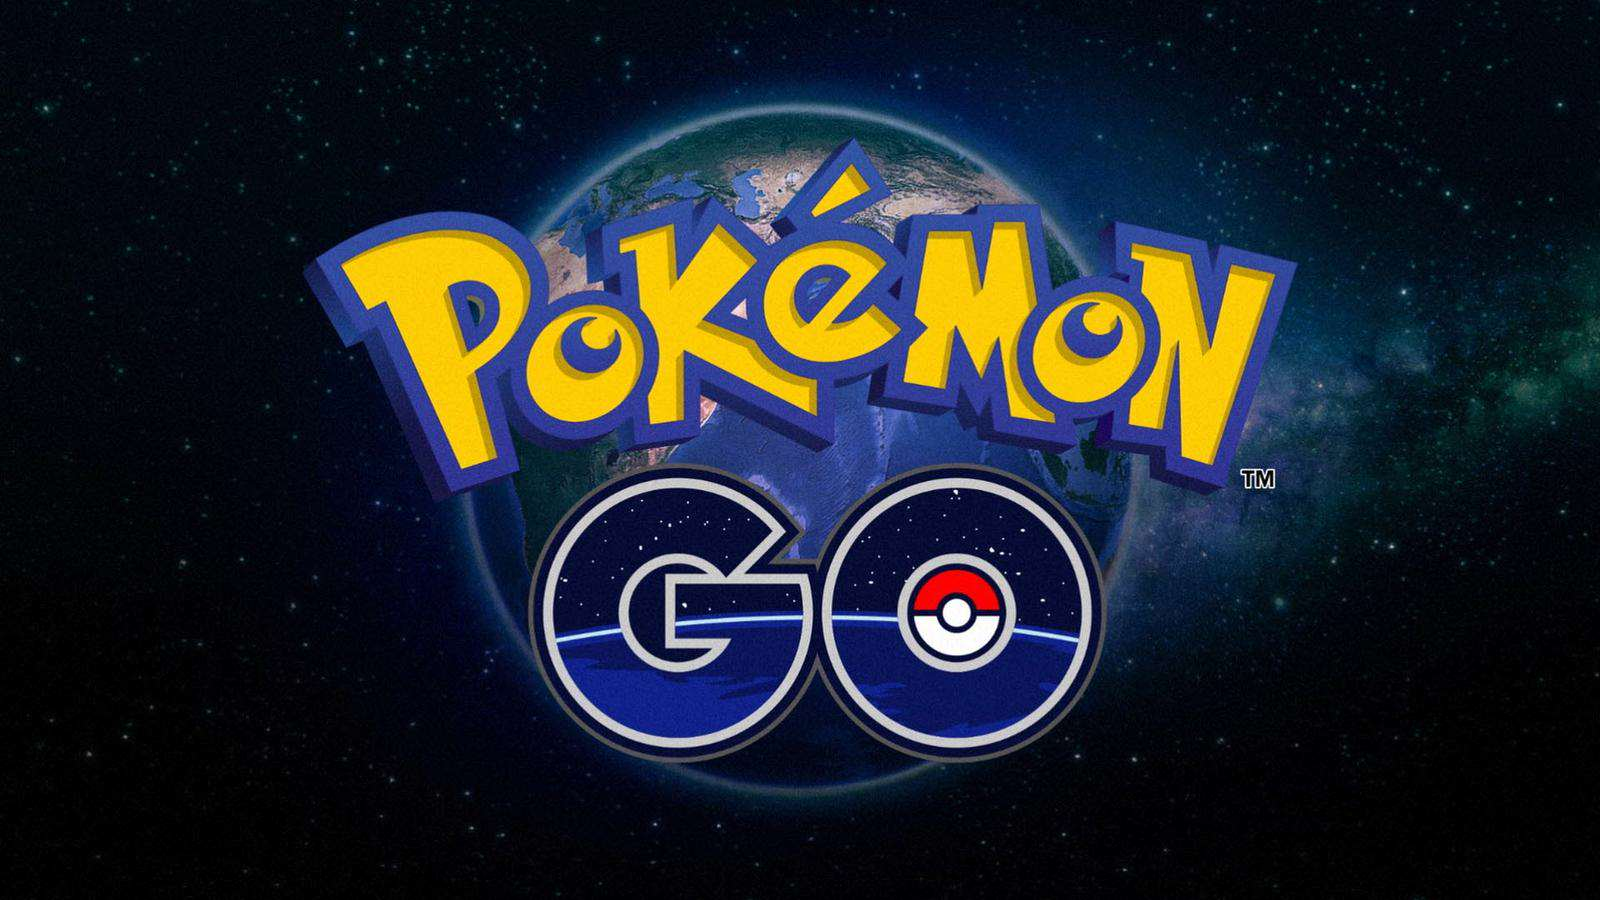 Pokemon Go Dev Speaks Out On Gmail Controversy